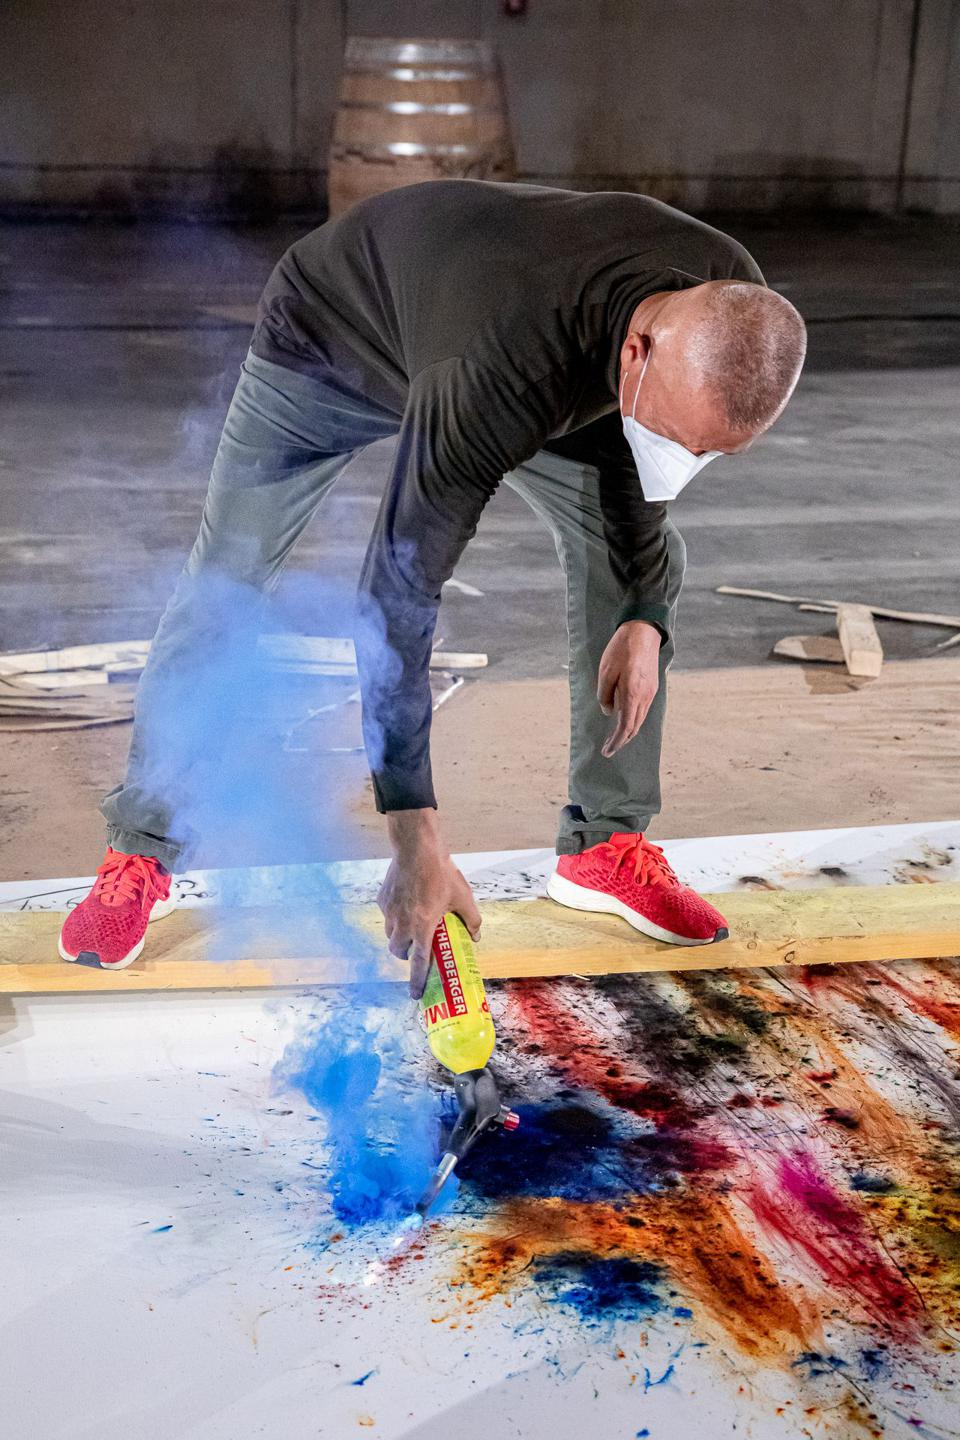 Cai Guo-Qiang working on a colored gunpowder painting that is now part of Hennessy's permanent collection